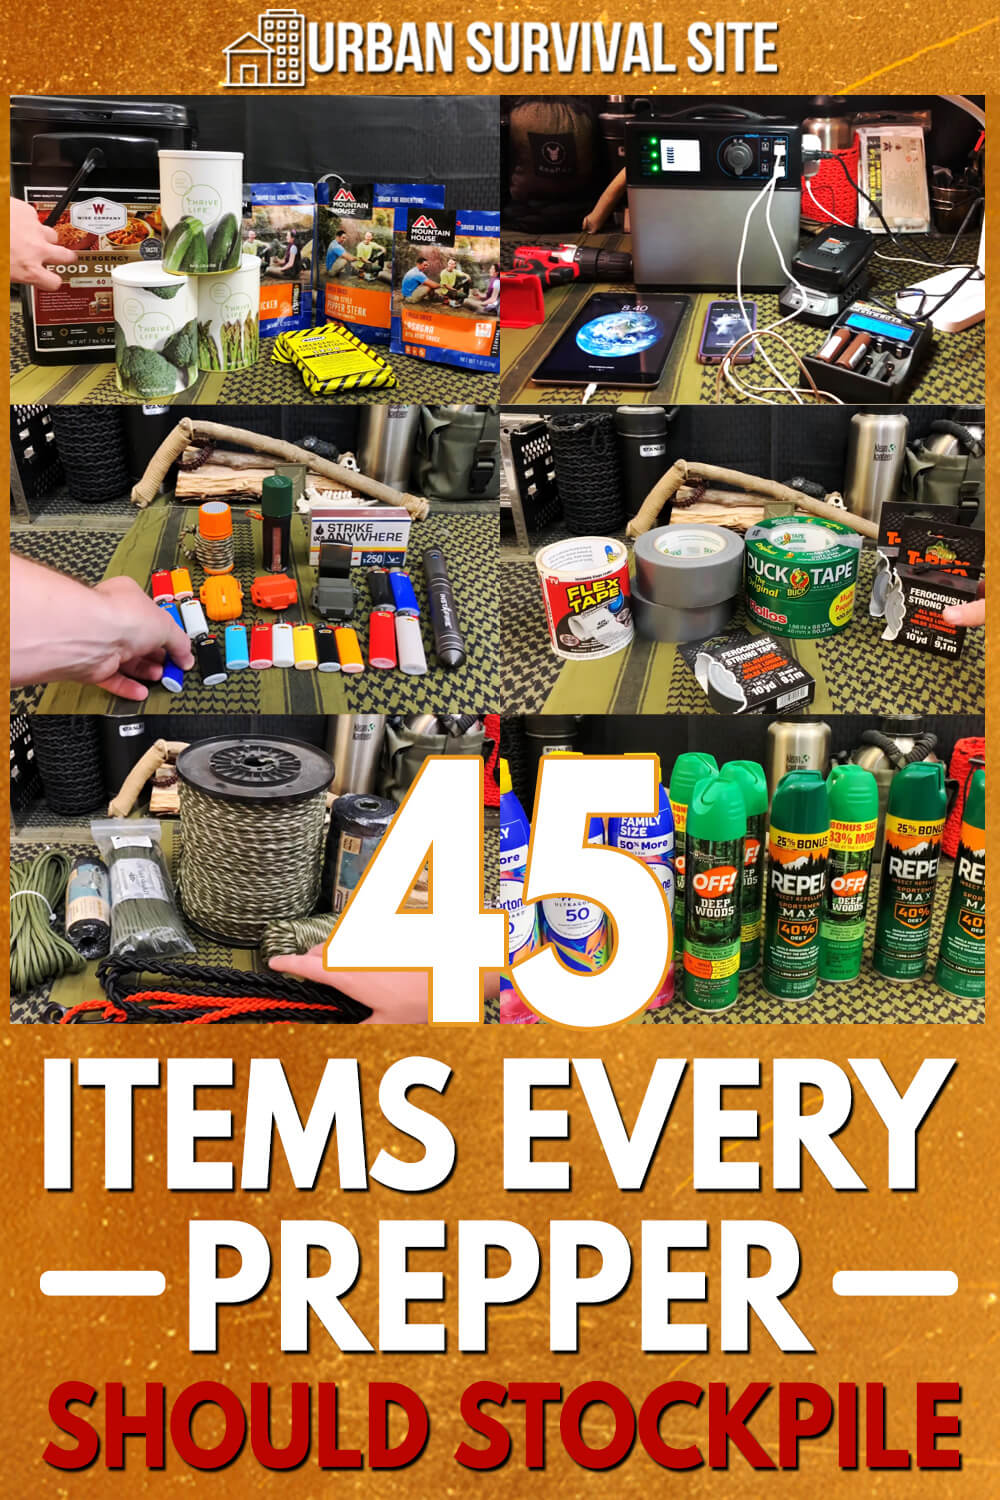 45 Items Every Prepper Should Stockpile